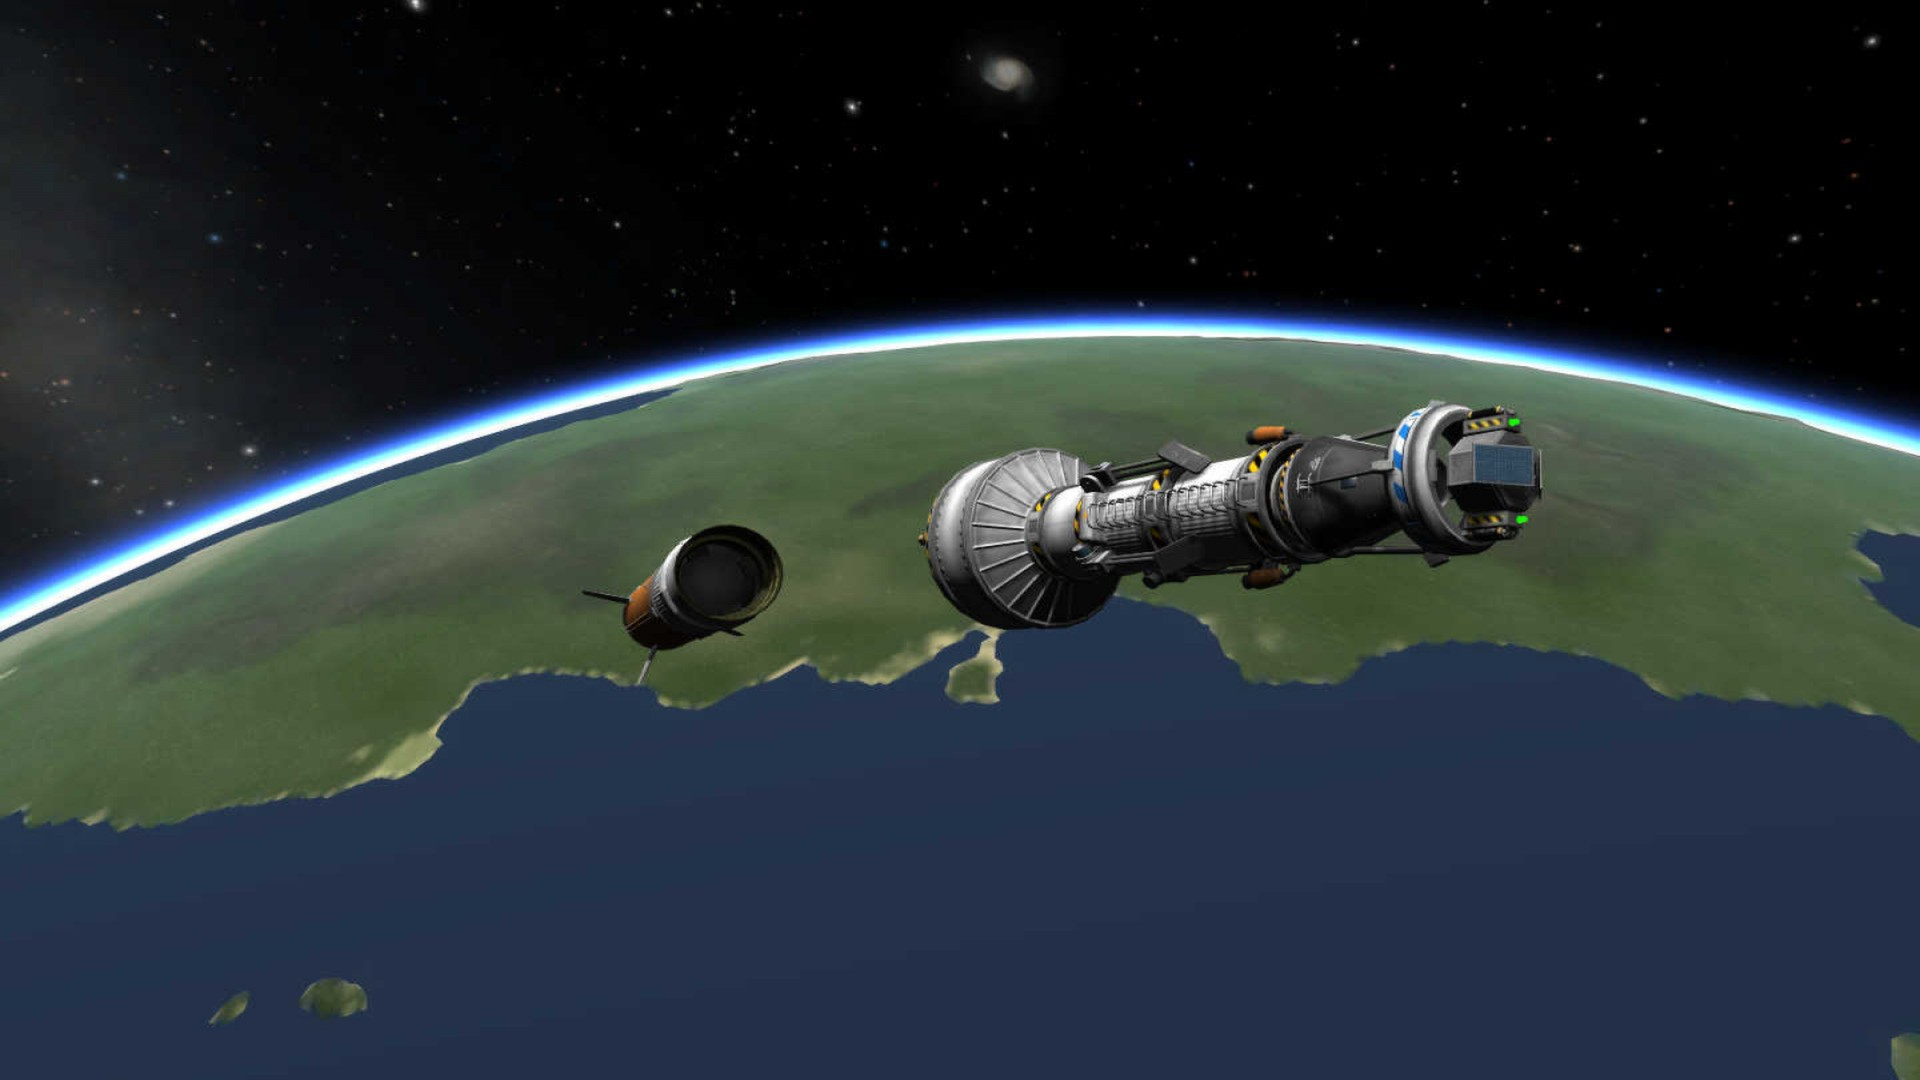 kerbal space program mods - HD 1920×1080